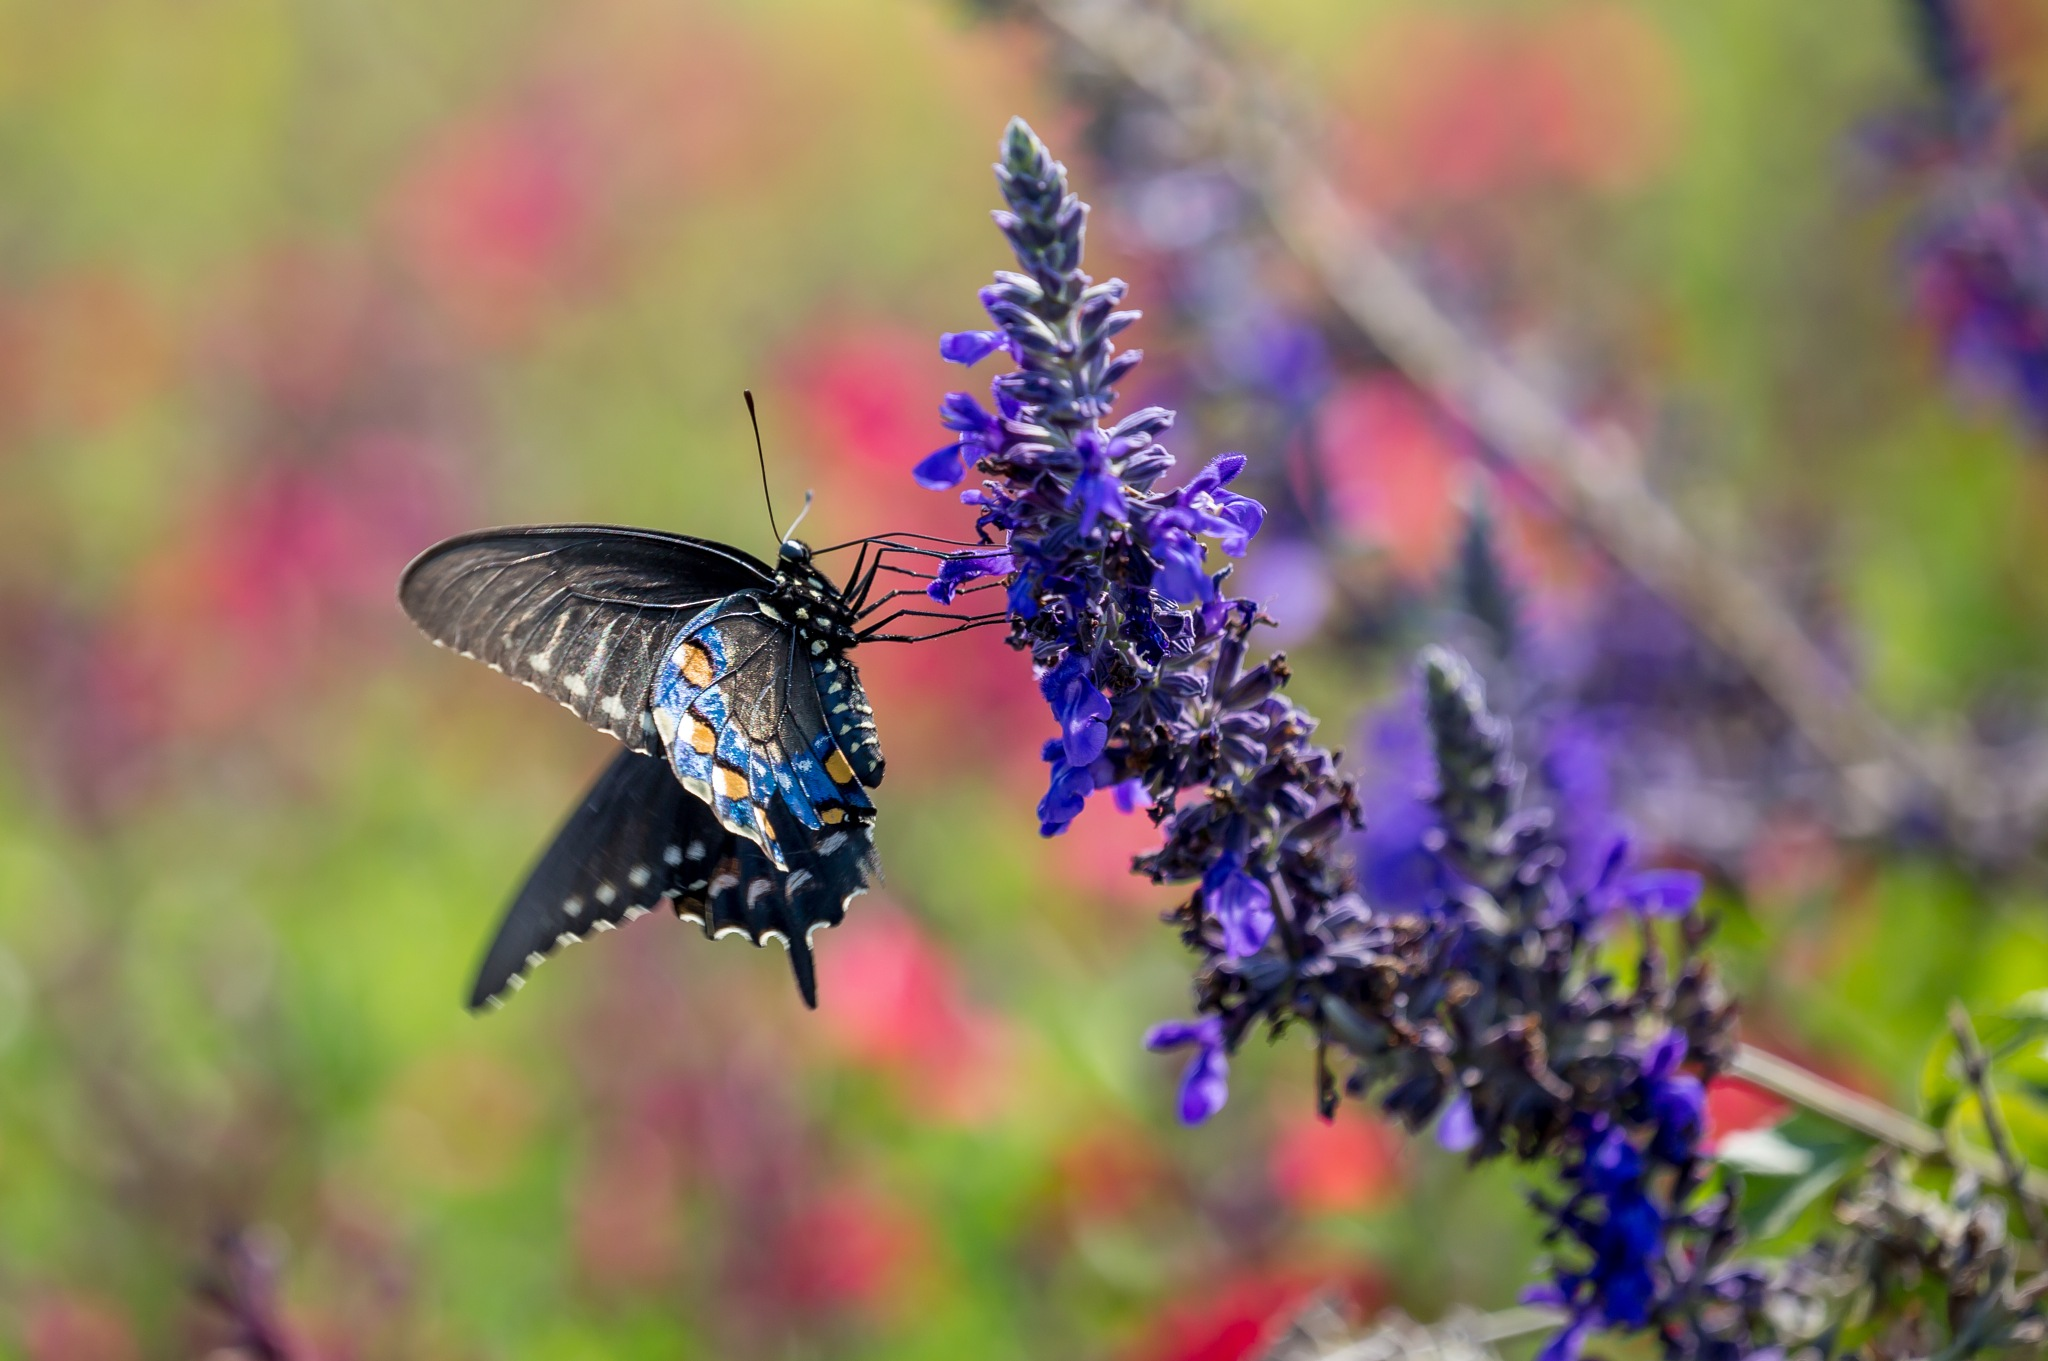 Butterfly 2 by Robert White